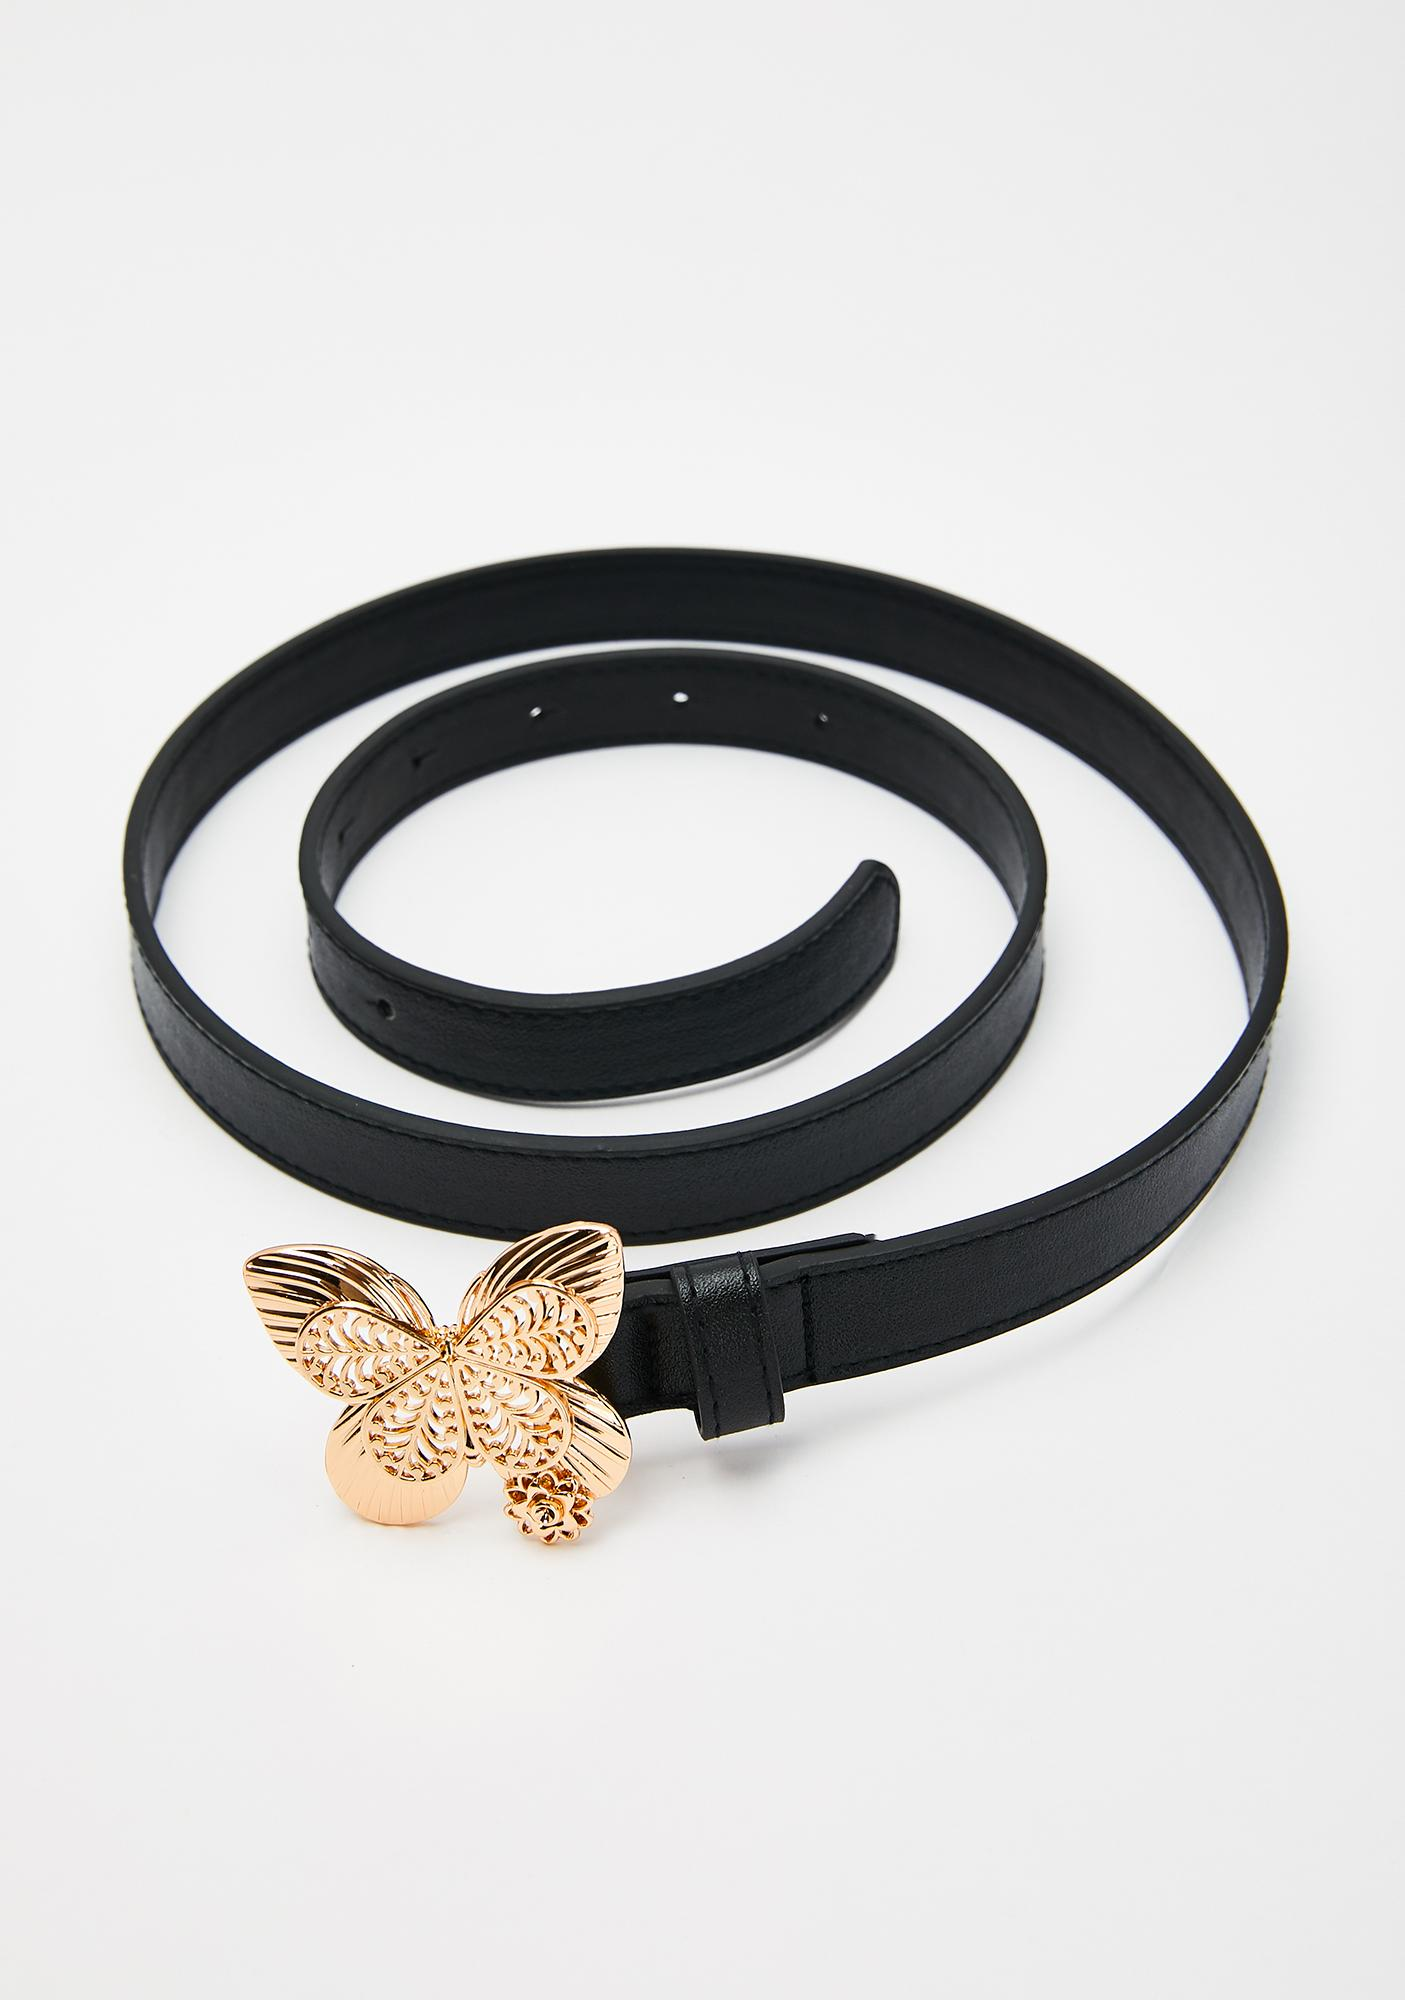 Shining Butterfly Buckle Belt